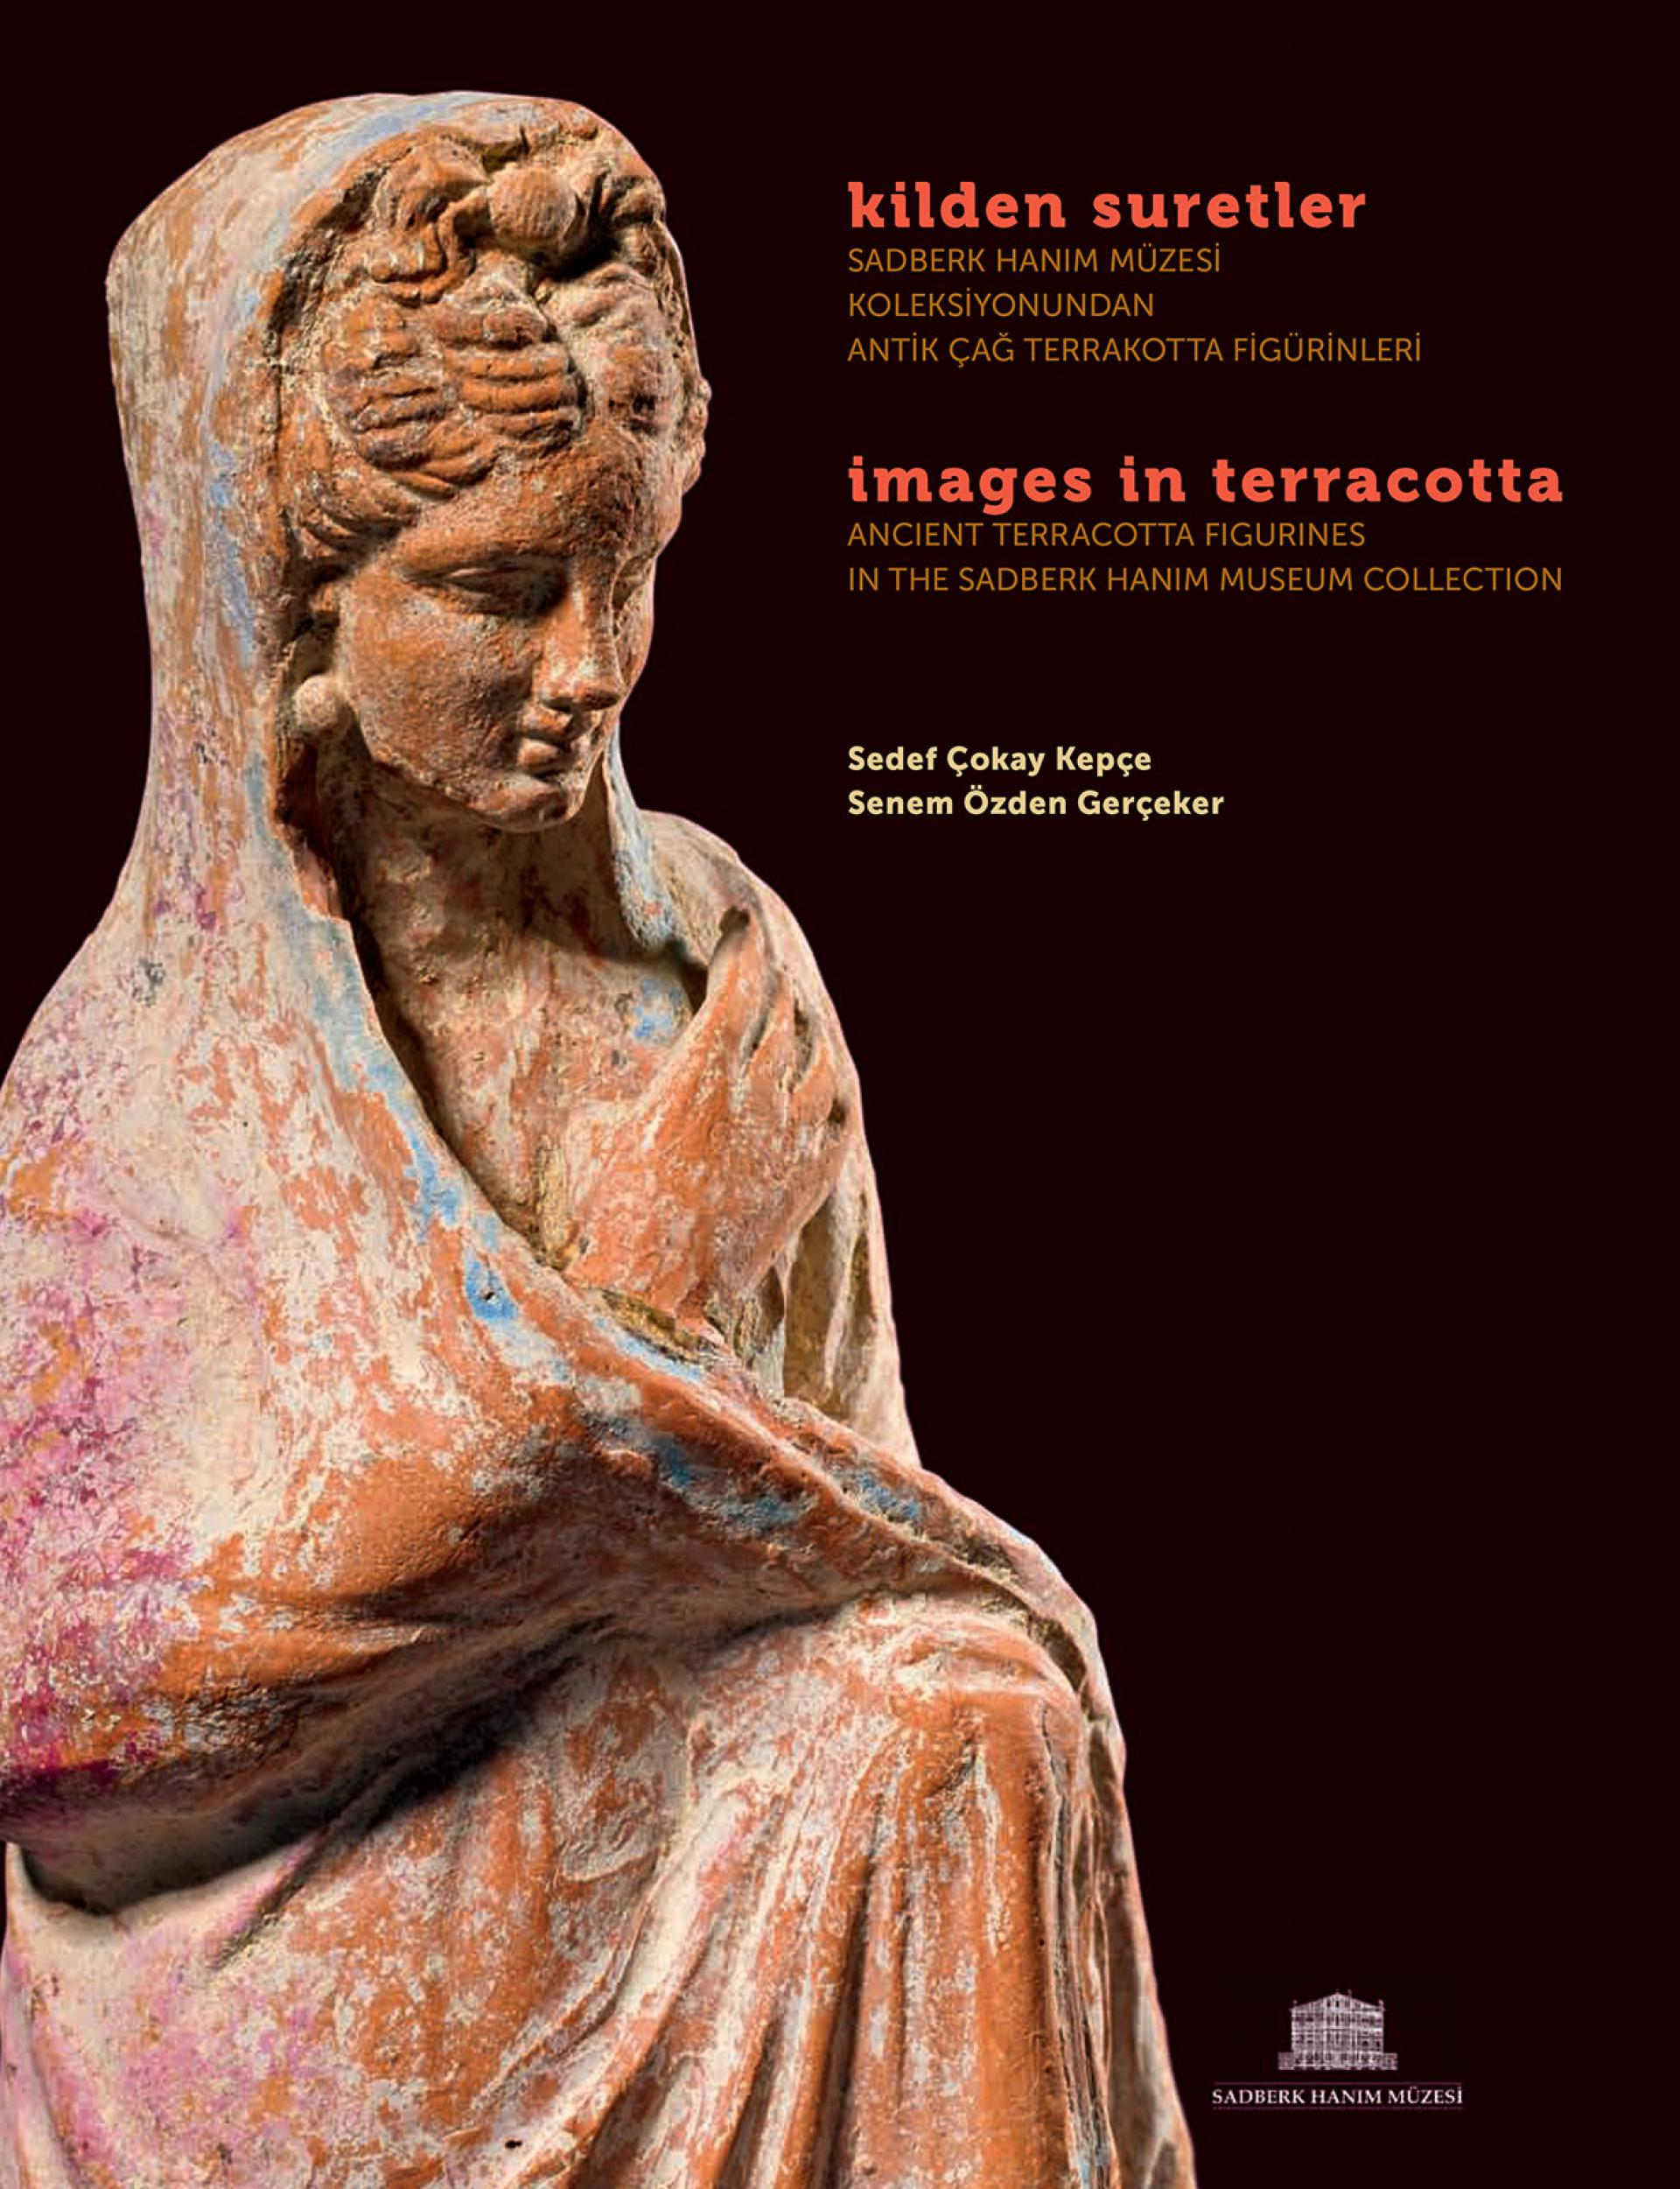 Images In Terracotta - Ancient Terracotta Figurines In The Sadberk Hanım Museum Collection - EXHIBITIONS - Sadberk Hanım Museum